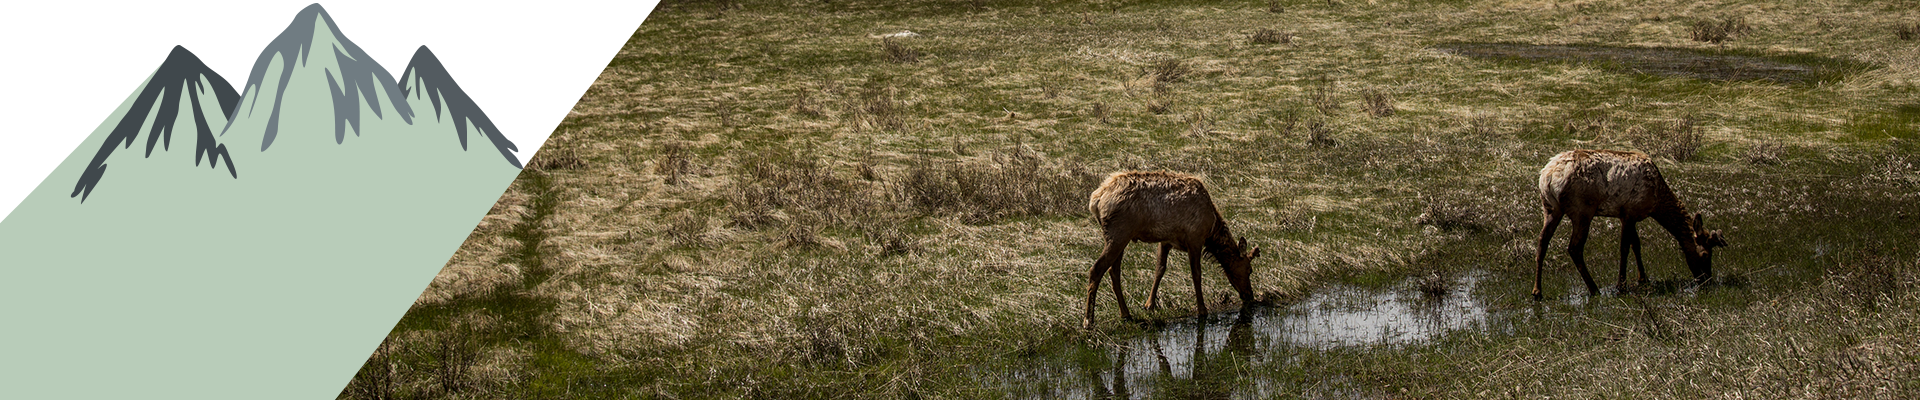 Elk in the Rocky Mountain National Park.